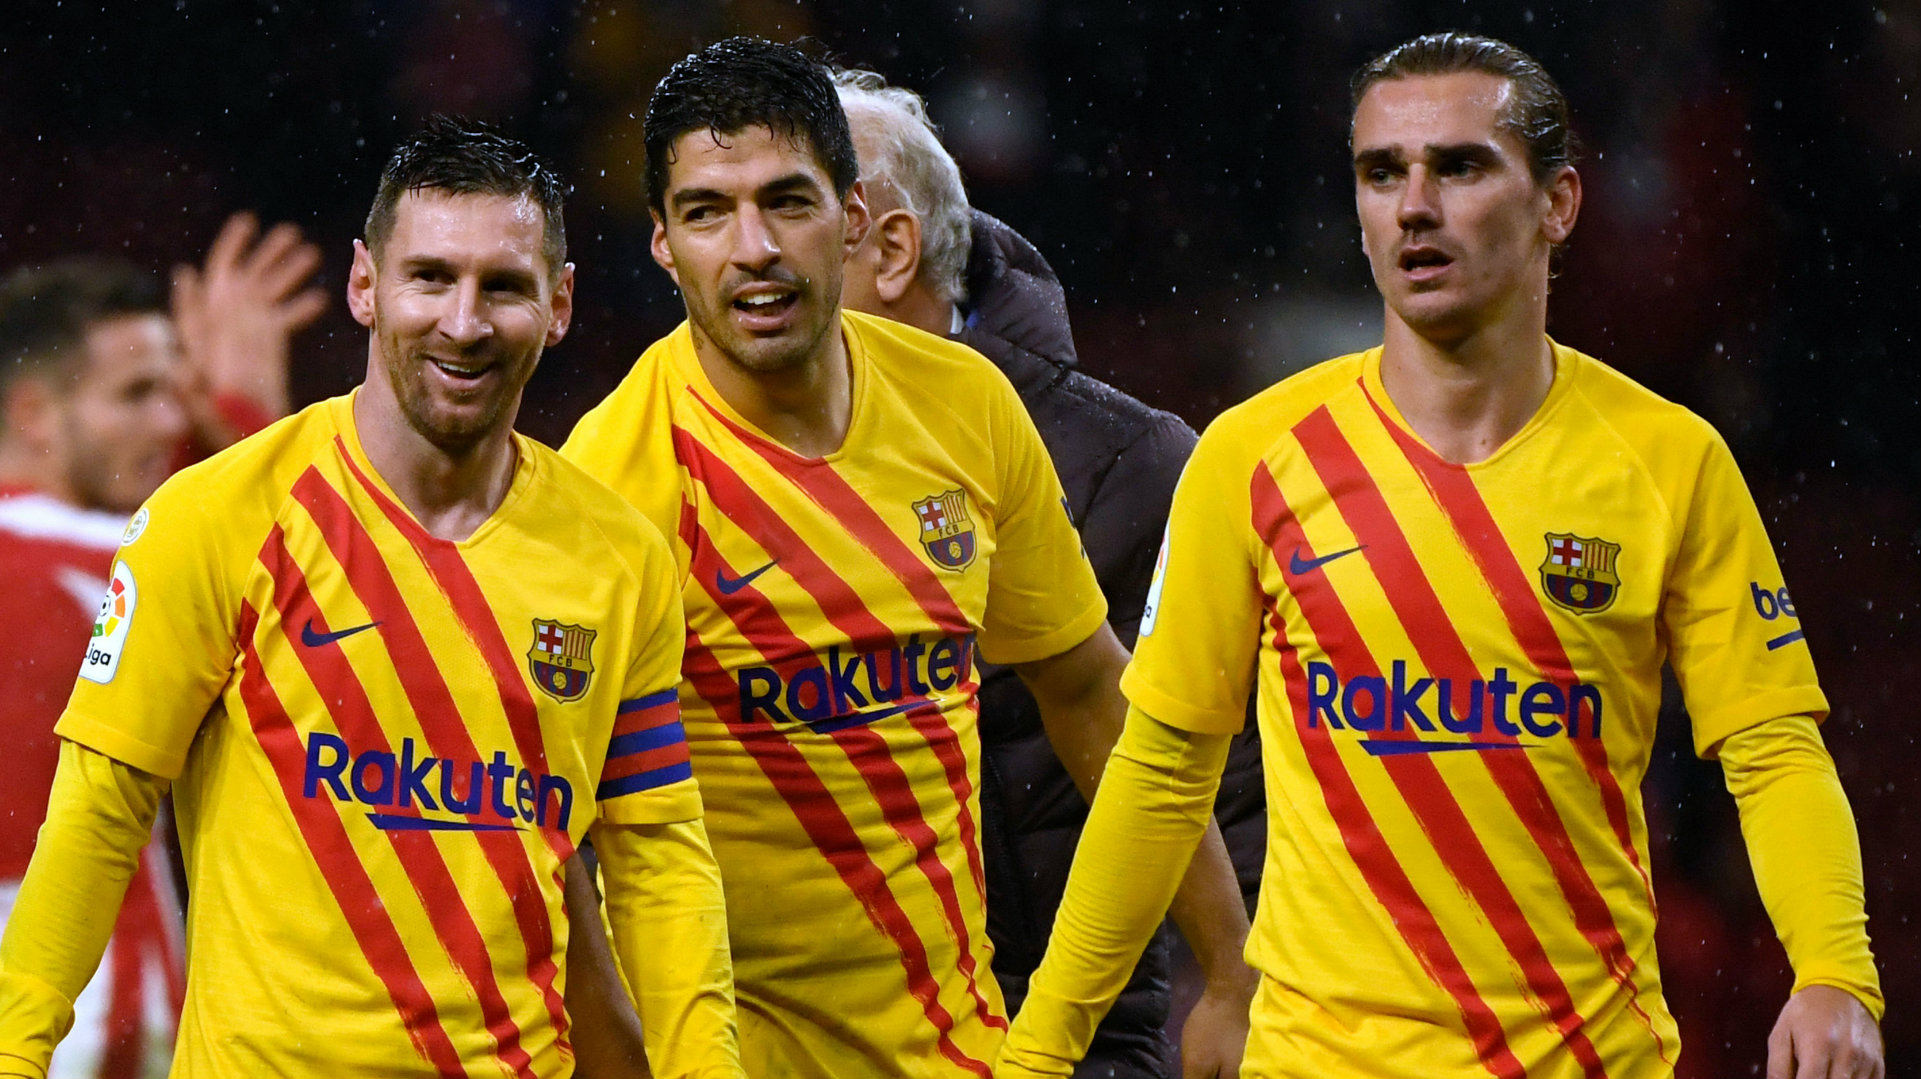 Suarez slams 'hurtful' claims Barca players refused wage cuts